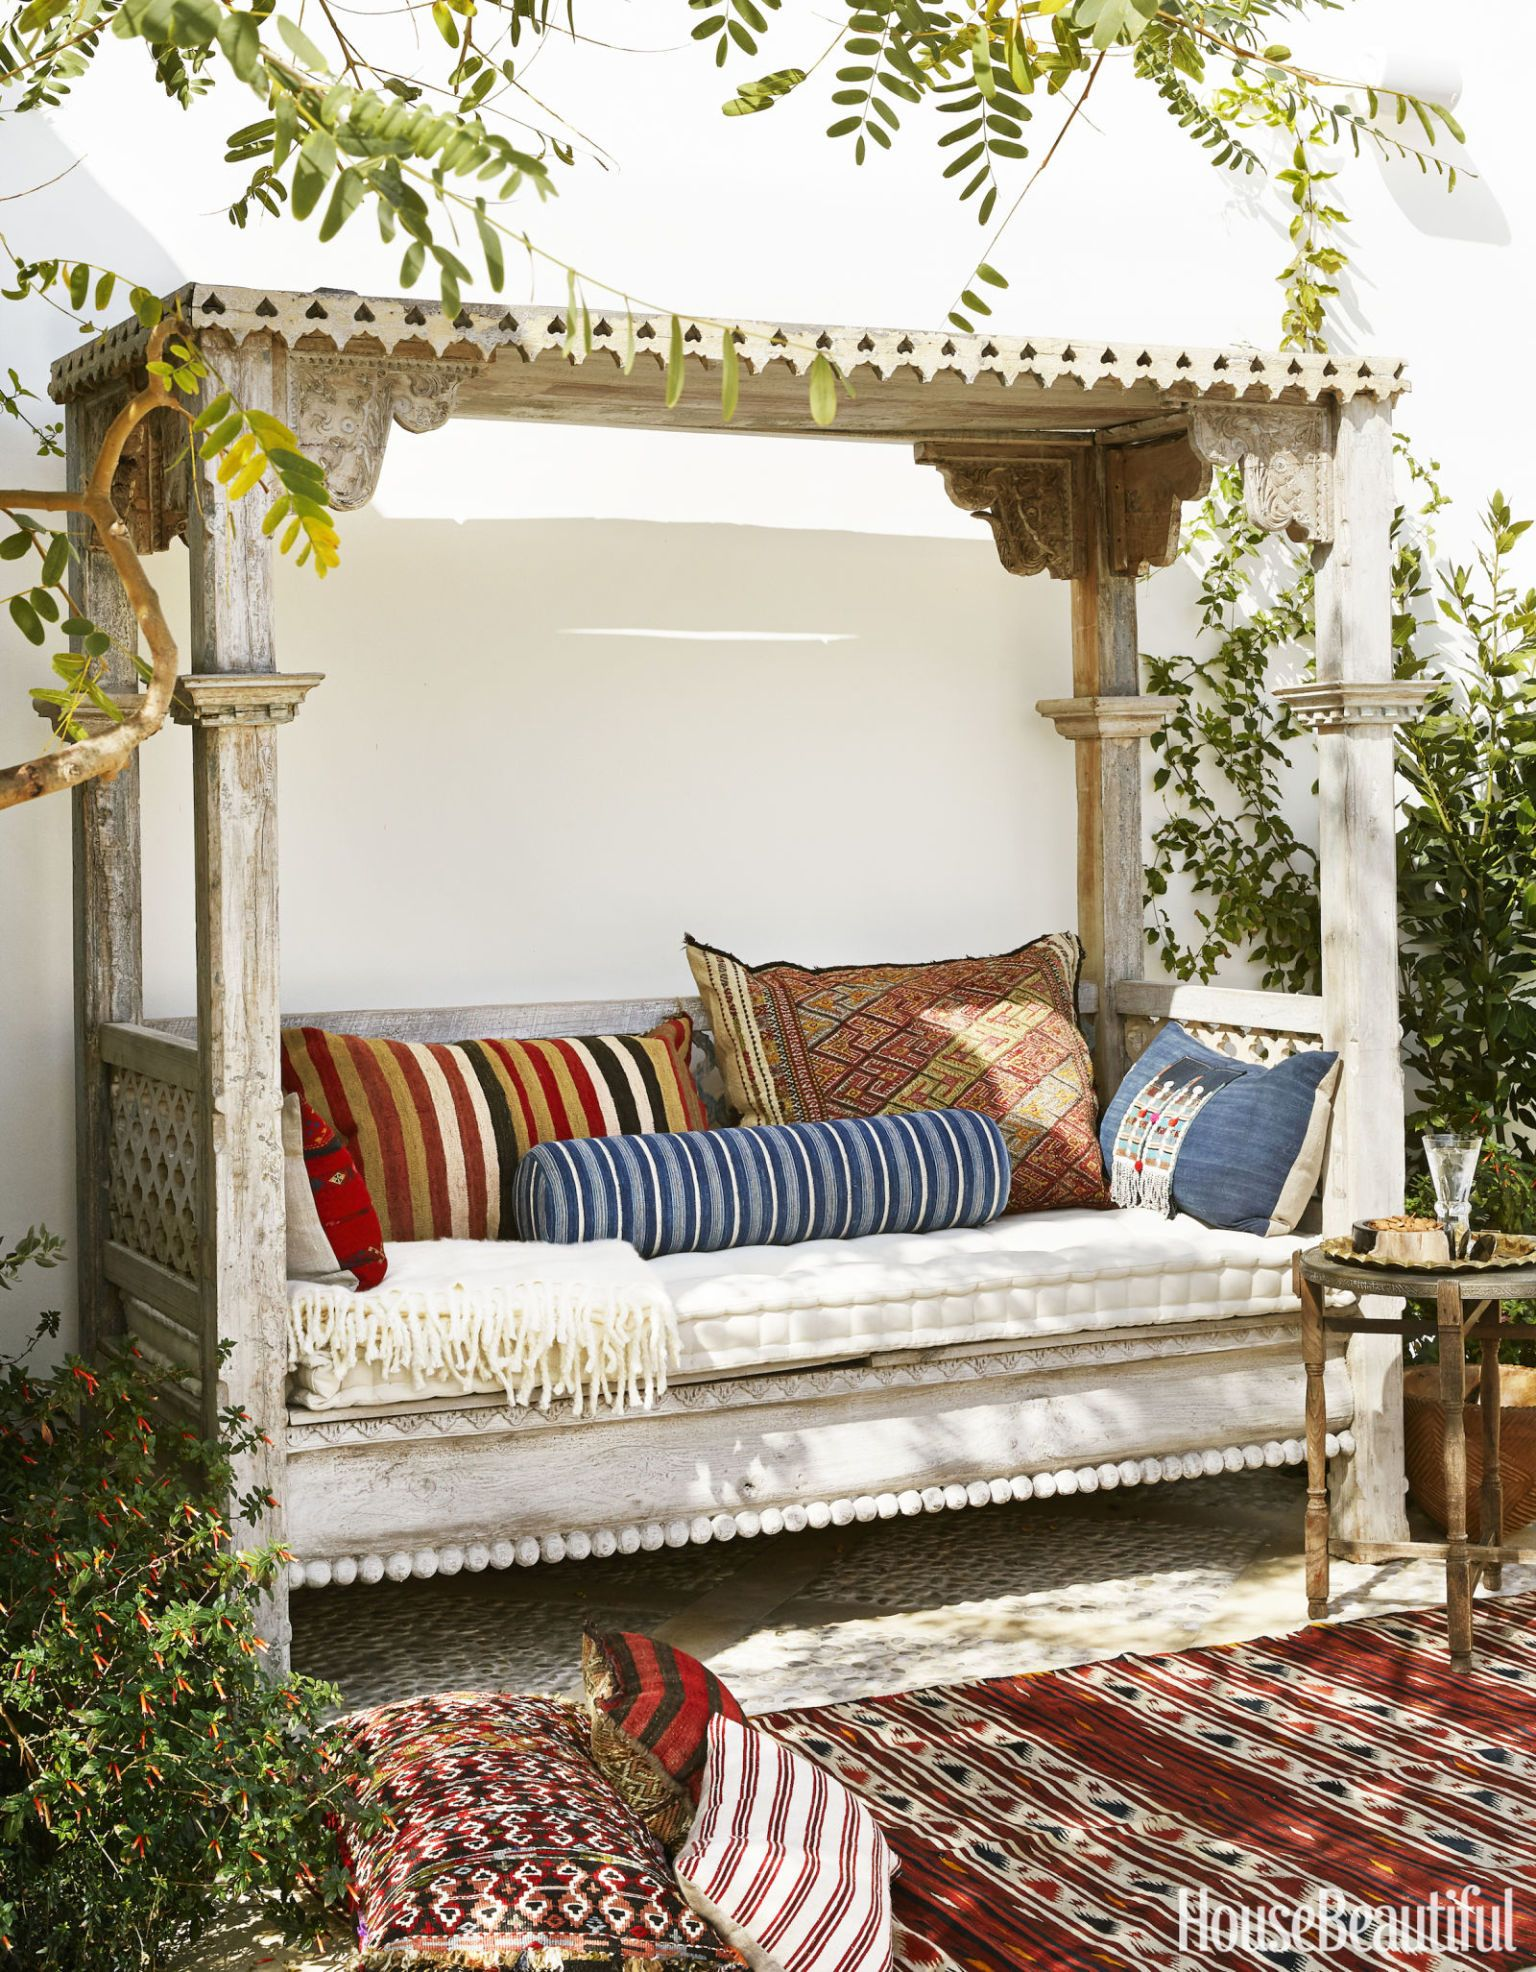 indonesian daybed Arte&Deco Pinterest